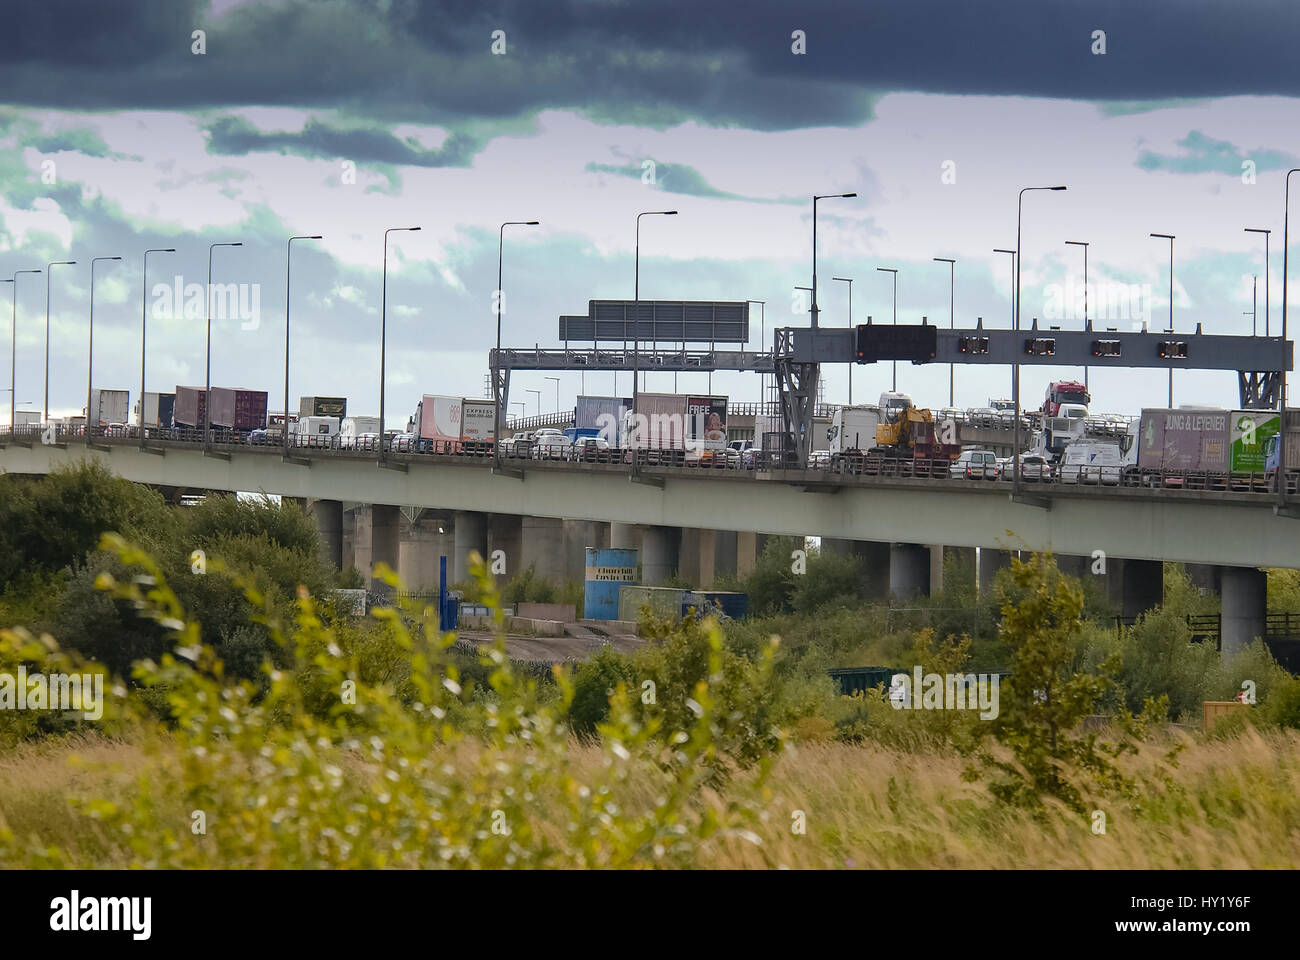 Traffic jam congestion oth esouthboaund Thelwall viaduct on the M6 motorway. - Stock Image